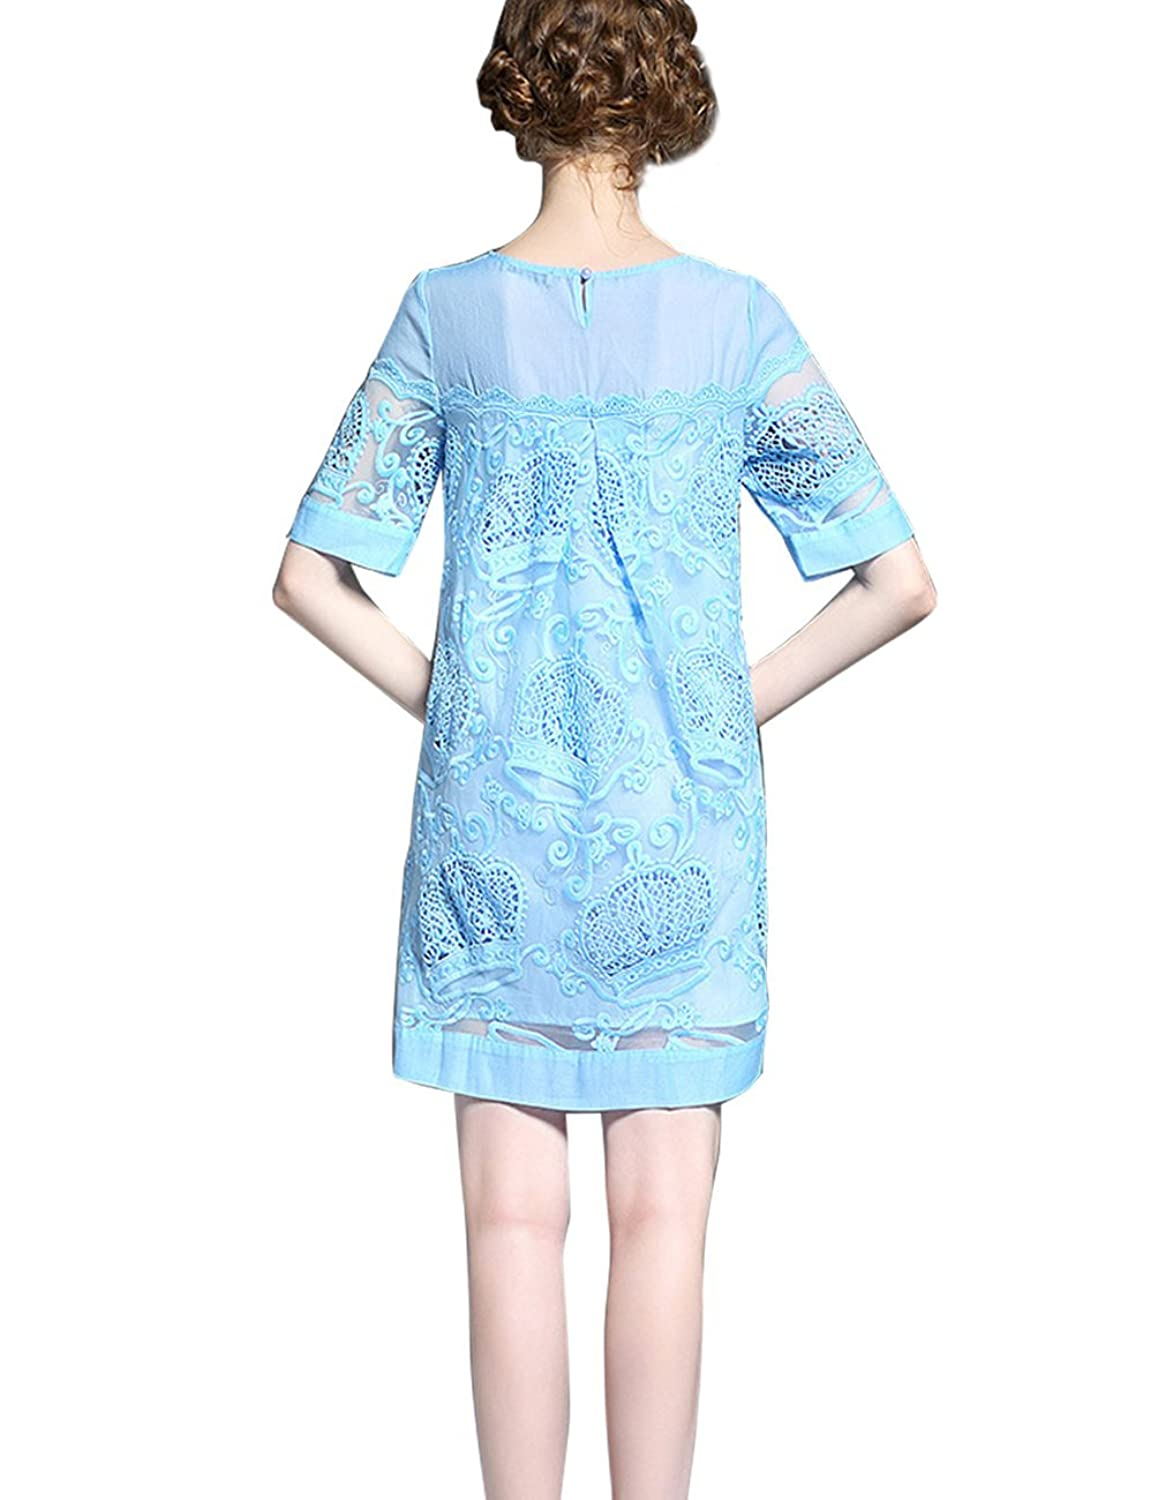 Dahlia Women's Petite Short Sleeve Crown Lace Tunic Dress, Blue